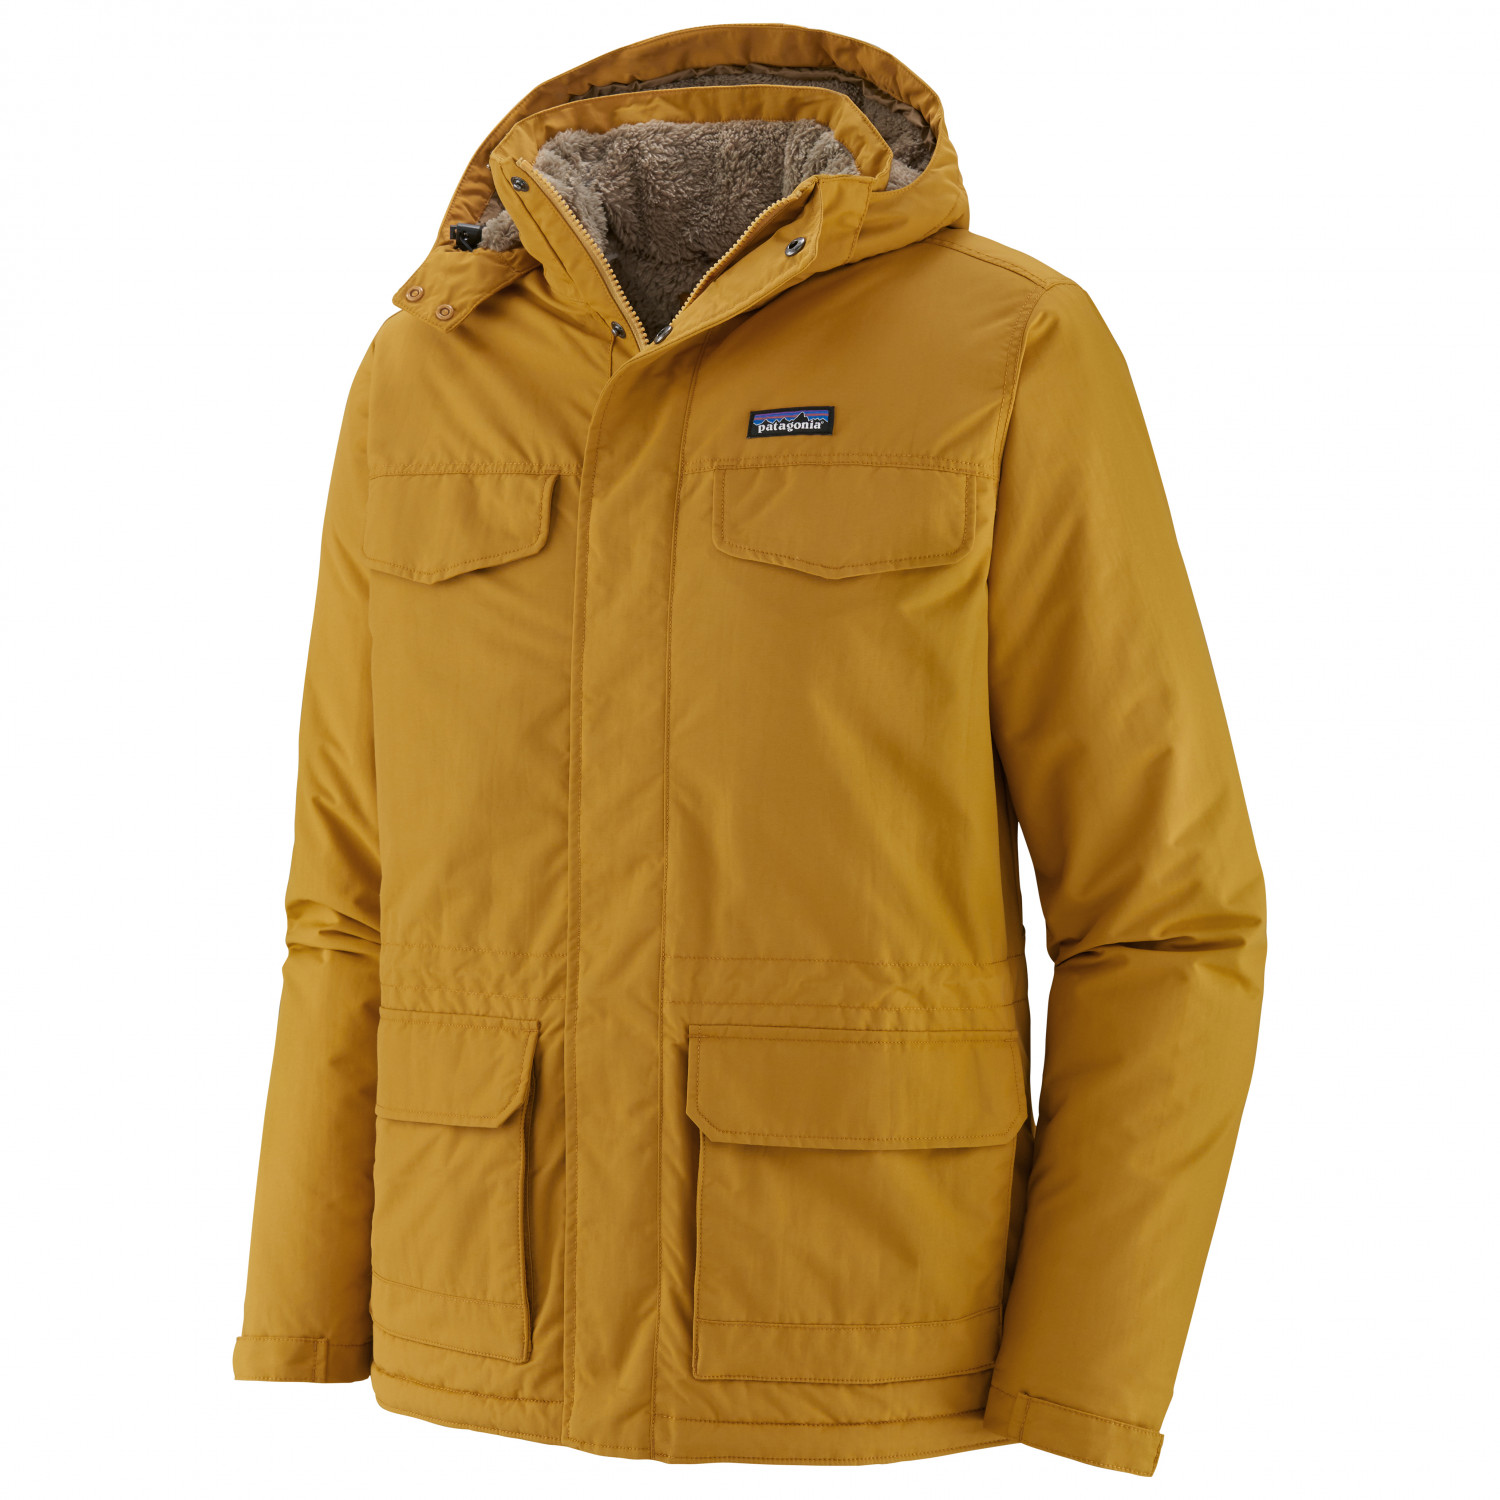 Patagonia Isthmus Parka Giacca invernale